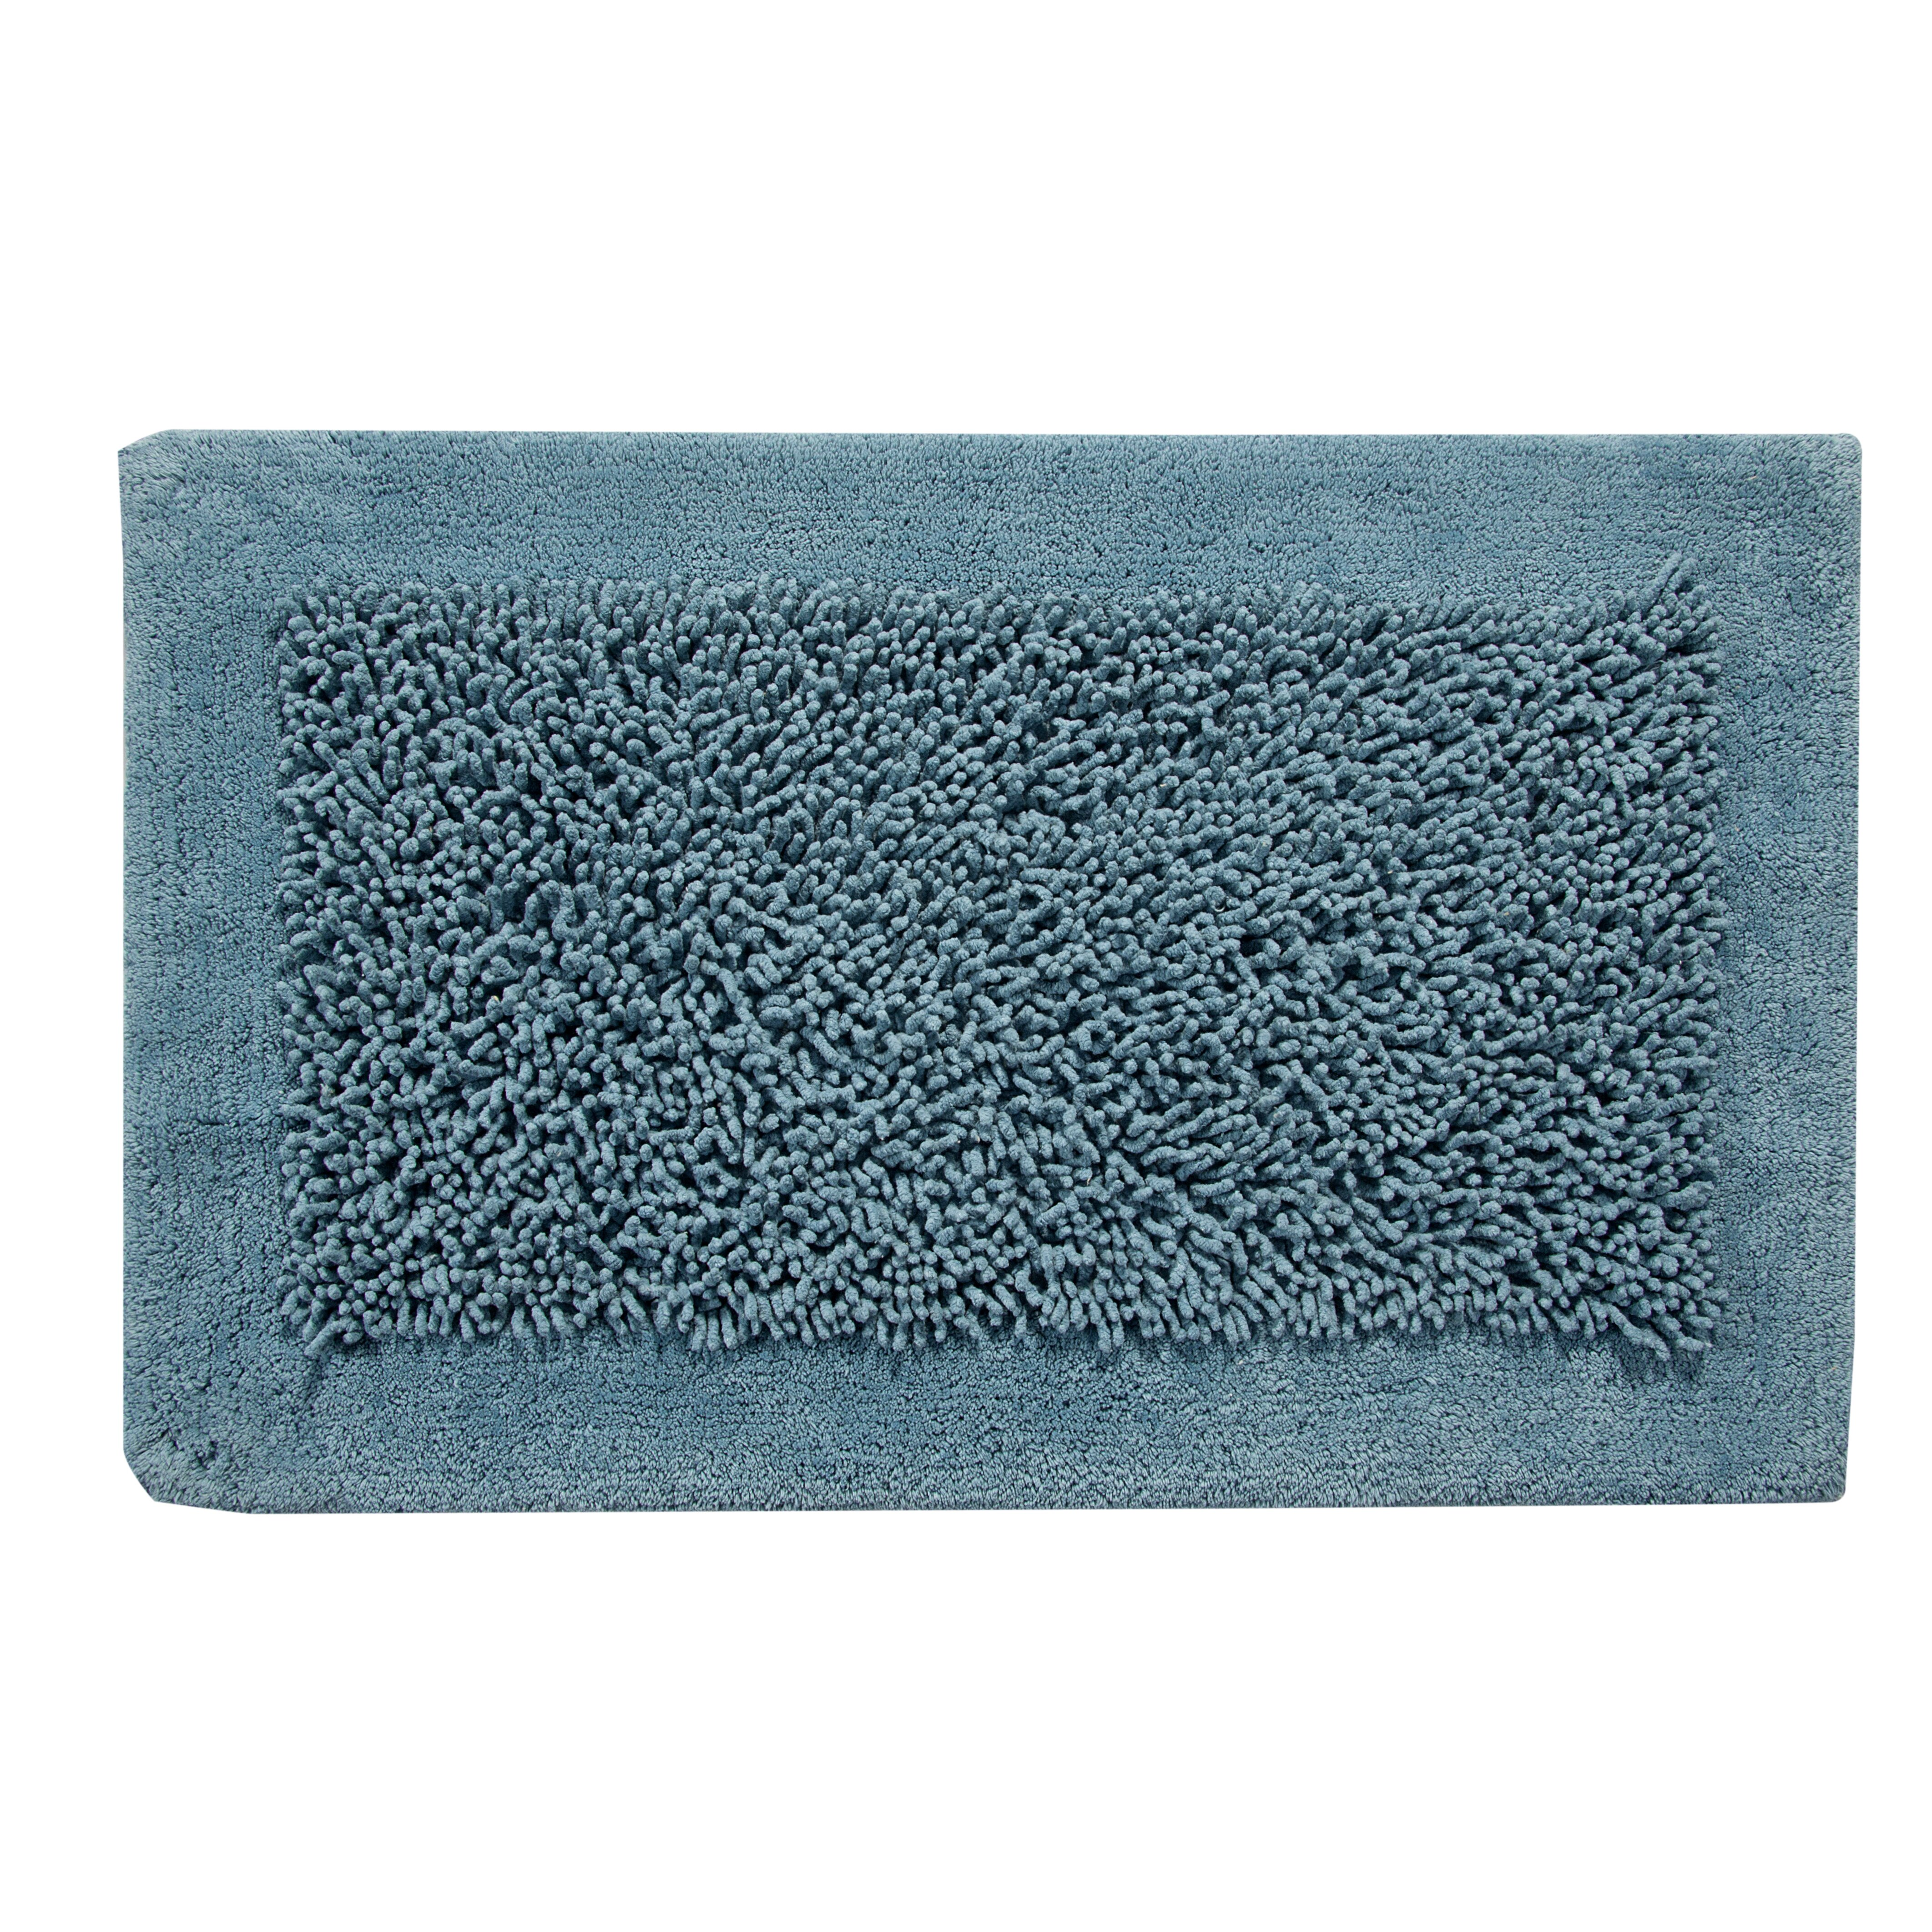 Luxury Living Supplies Bath And Shower Supplies Bath Rugs And Mats